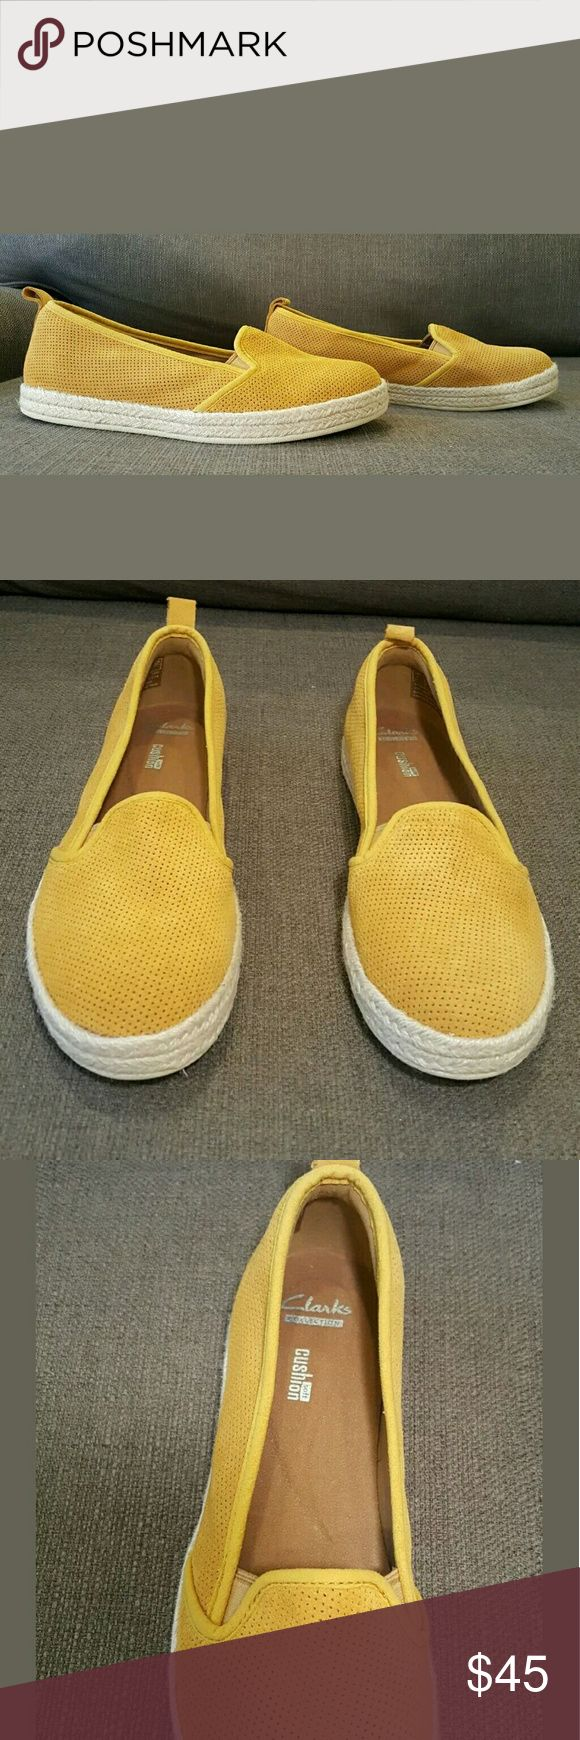 CLARKS Azella major Womens Yellow Espadrille 8.5 NEW Clarks Cushion Yellow/Mustard Espadrille. Suede upper and sole rubber. Clarks Shoes Espadrilles